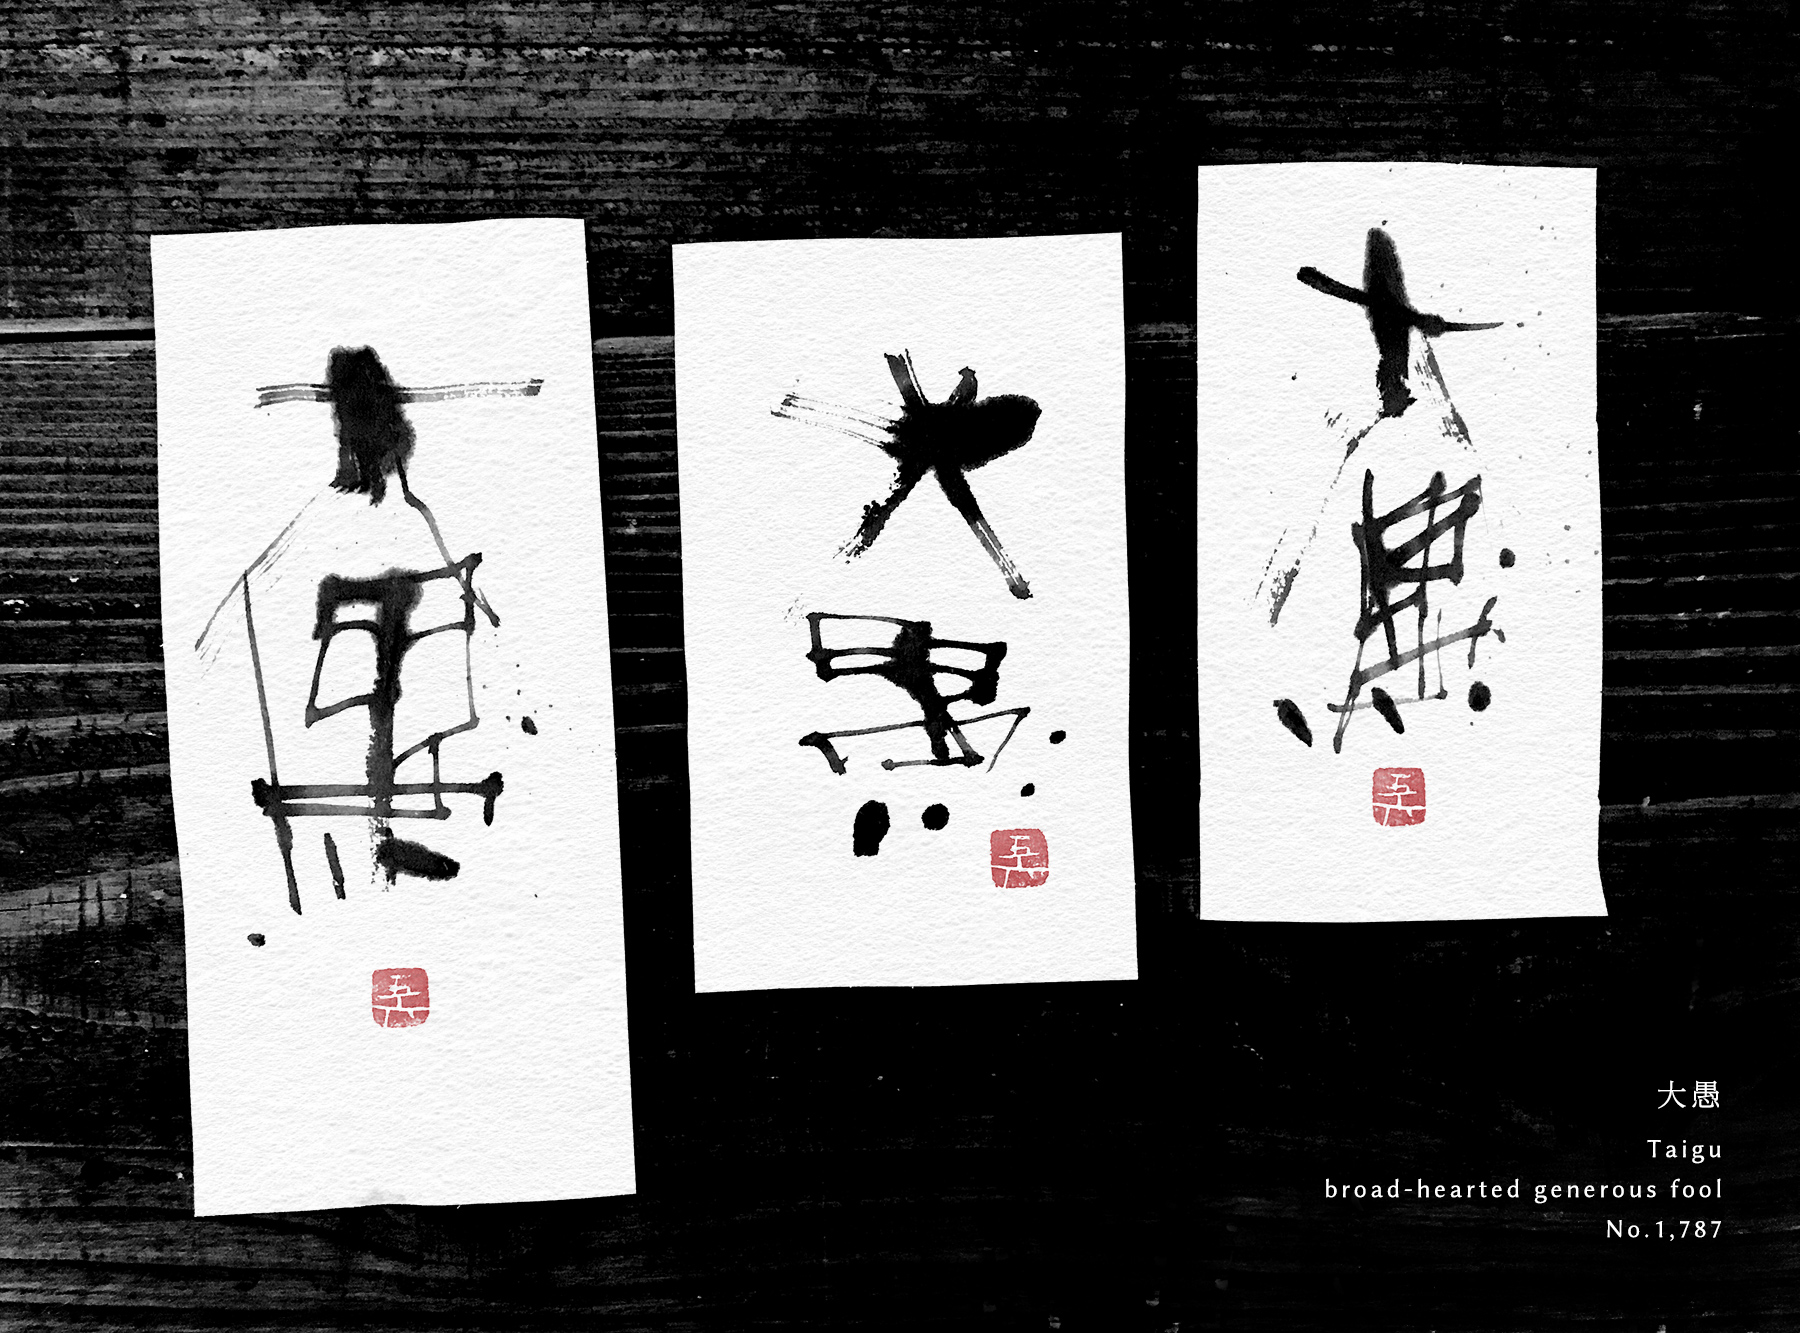 大愚 | broad-hearted generous fool 書道作品 japaneseart japanese calligraphy 書家 田川悟郎 Goroh Tagawa